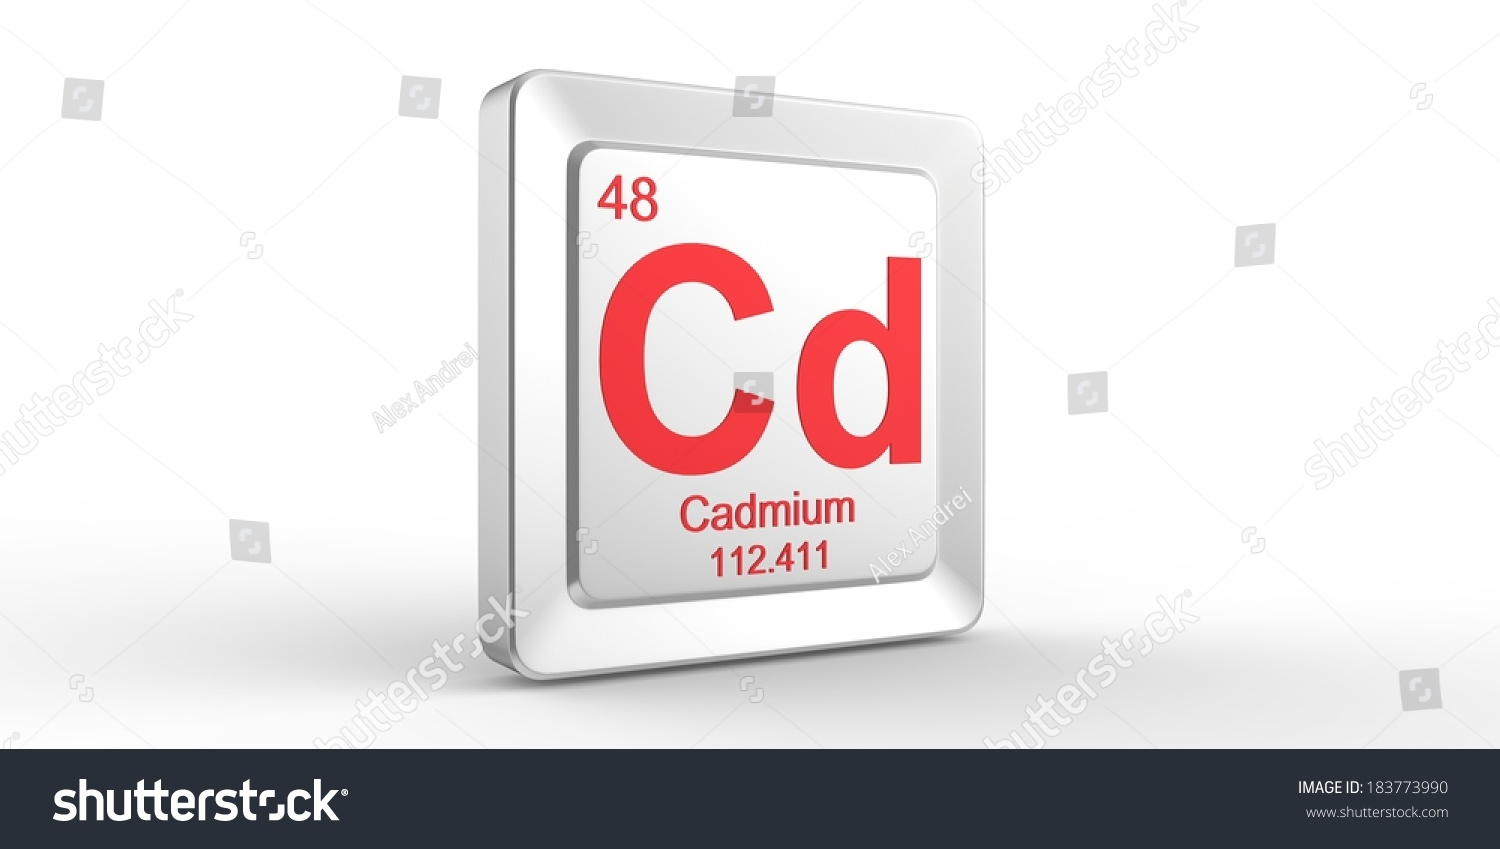 Element cd periodic table image collections periodic table images cadmium periodic table gallery periodic table images element cd periodic table choice image periodic table images gamestrikefo Image collections